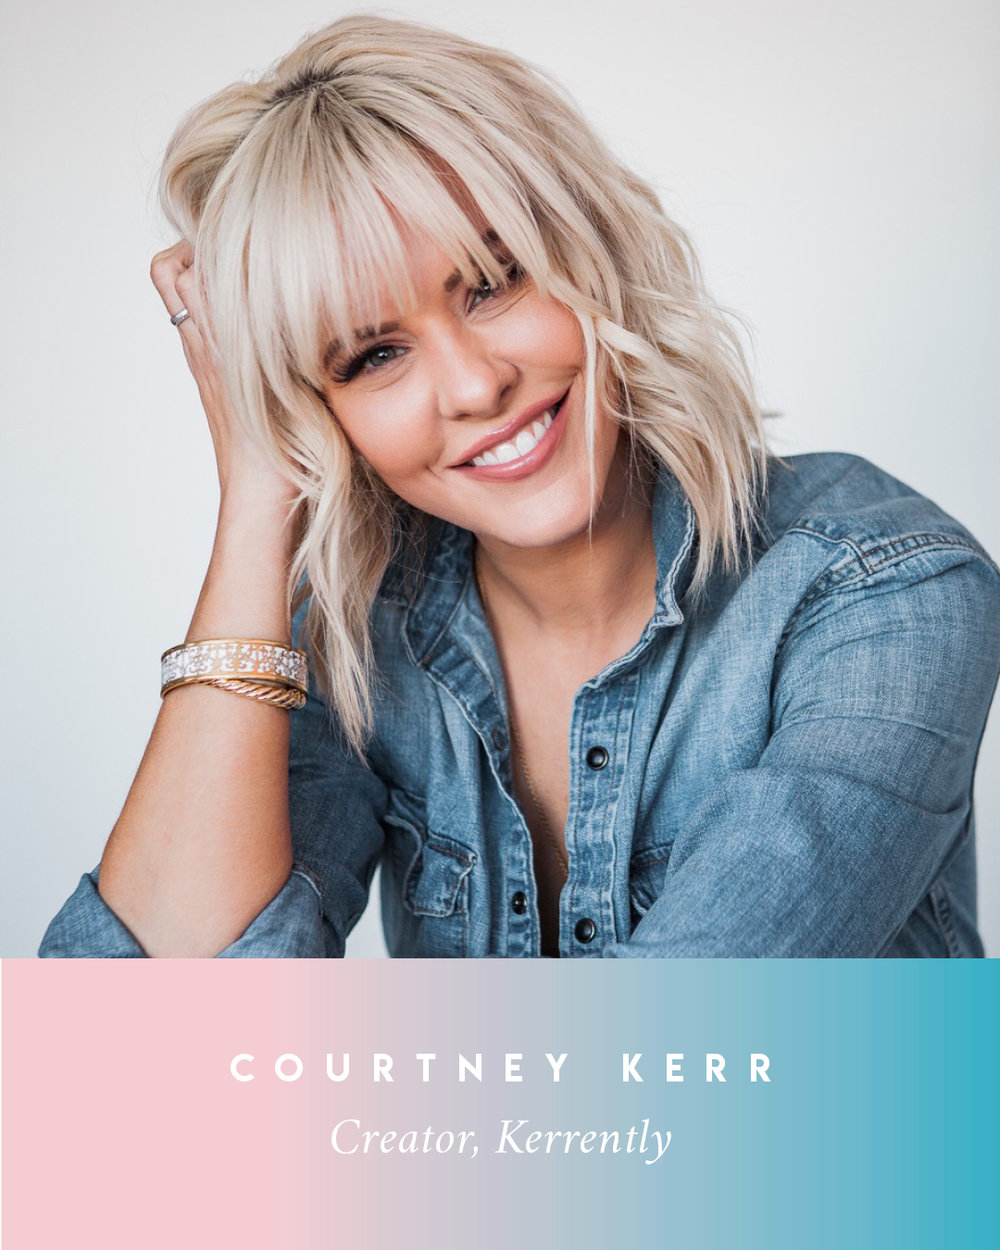 courtney-kerr.jpg